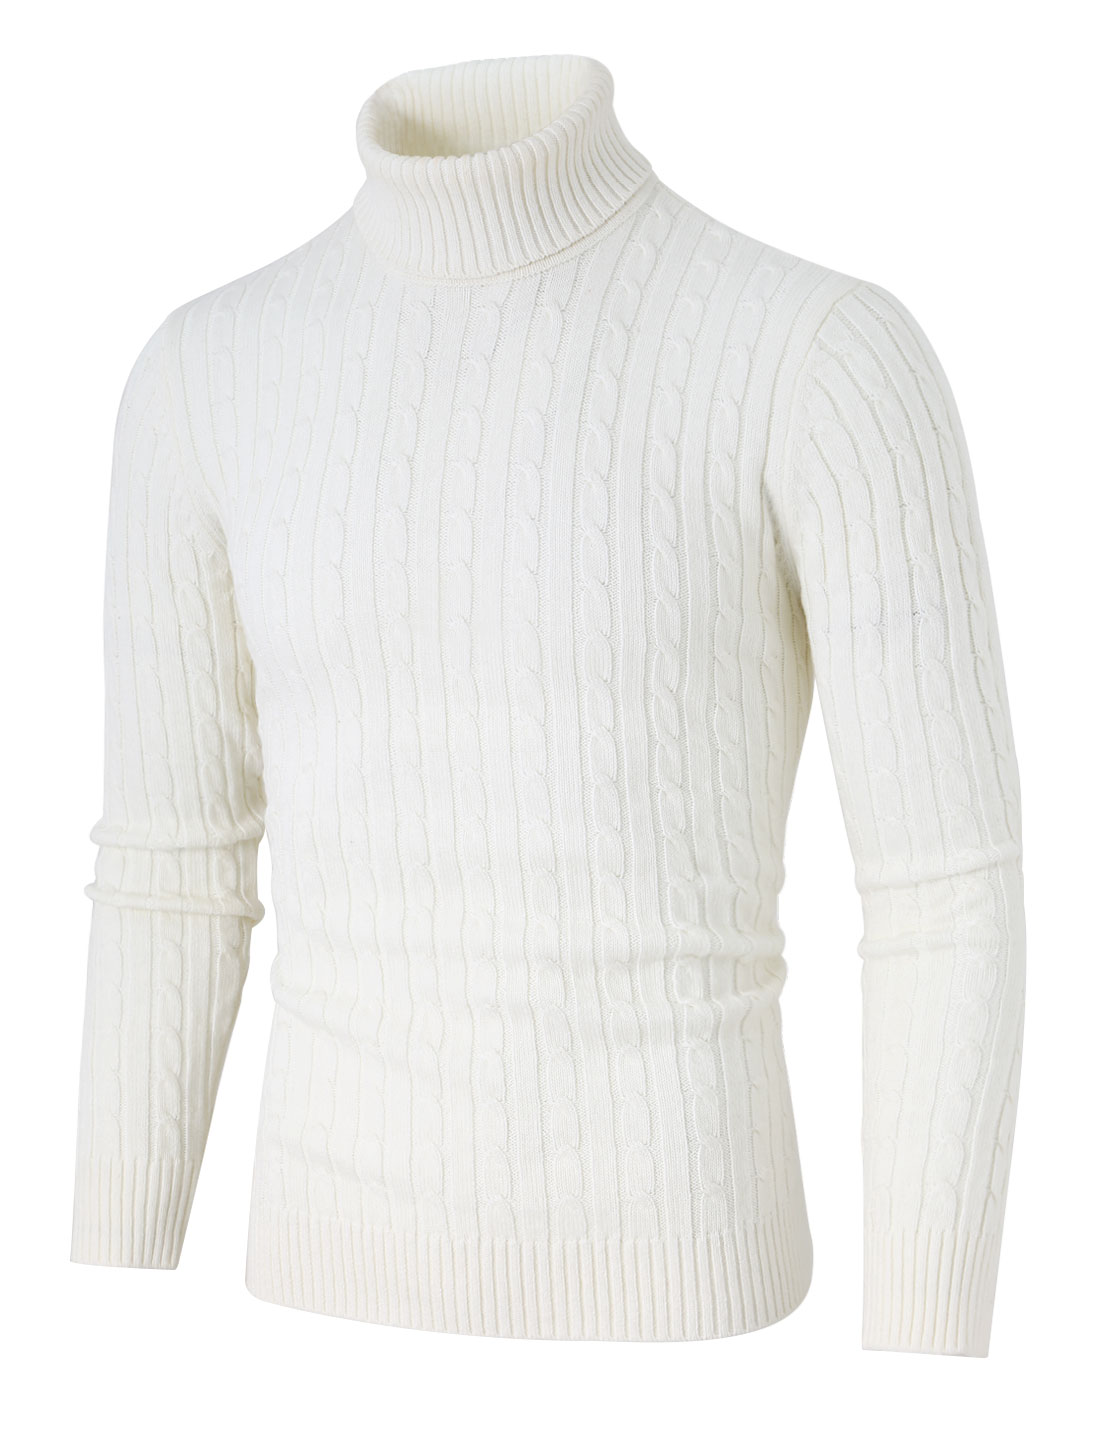 Men Turtleneck Long Sleeves Pullover Cable Knitted Sweater White XL (US 46)